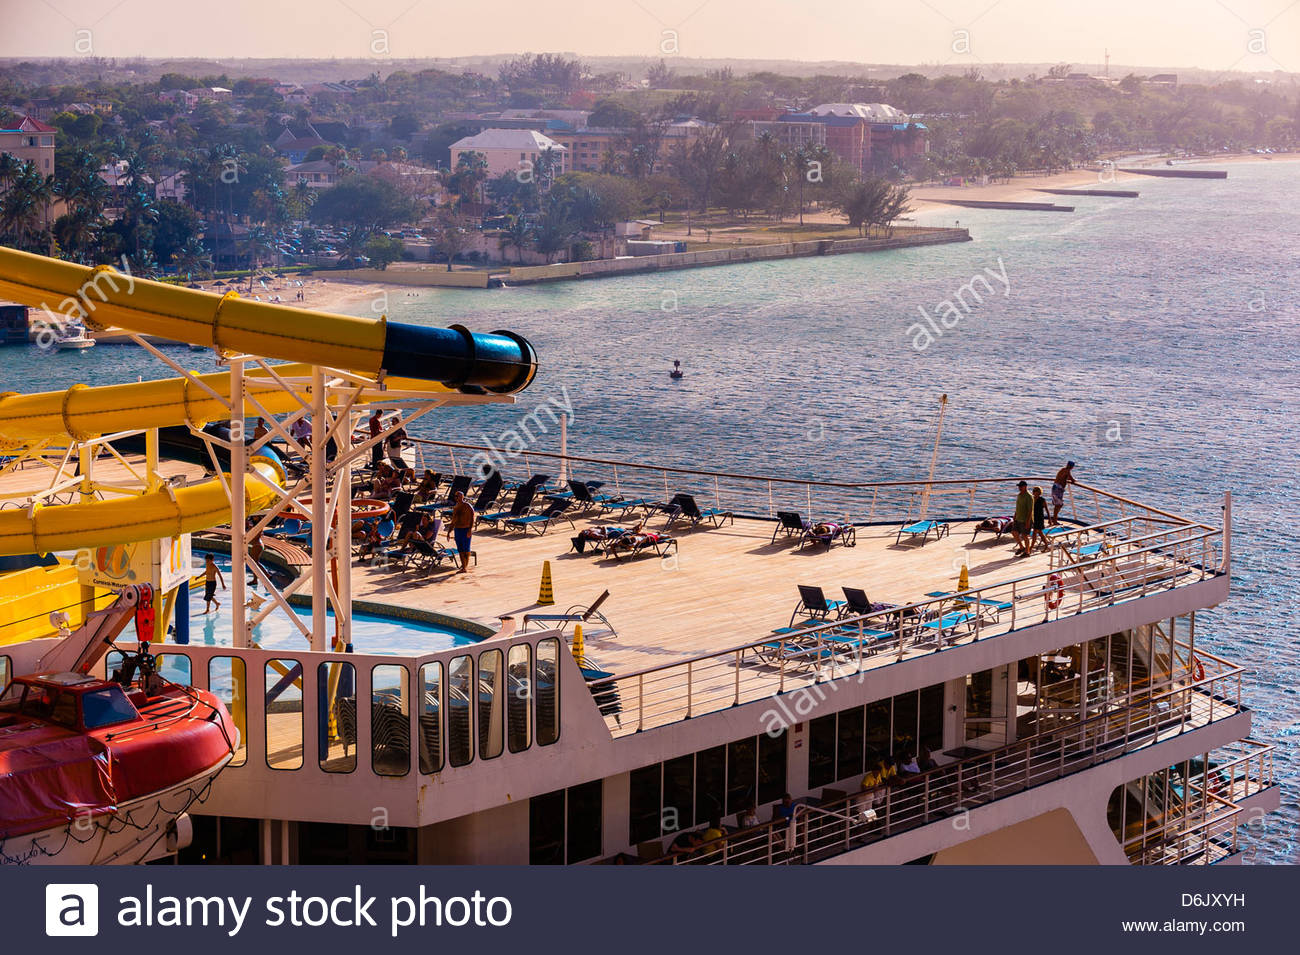 Carnival Fascination cruise ship docked at Nassau, The Bahamas. - Stock Image